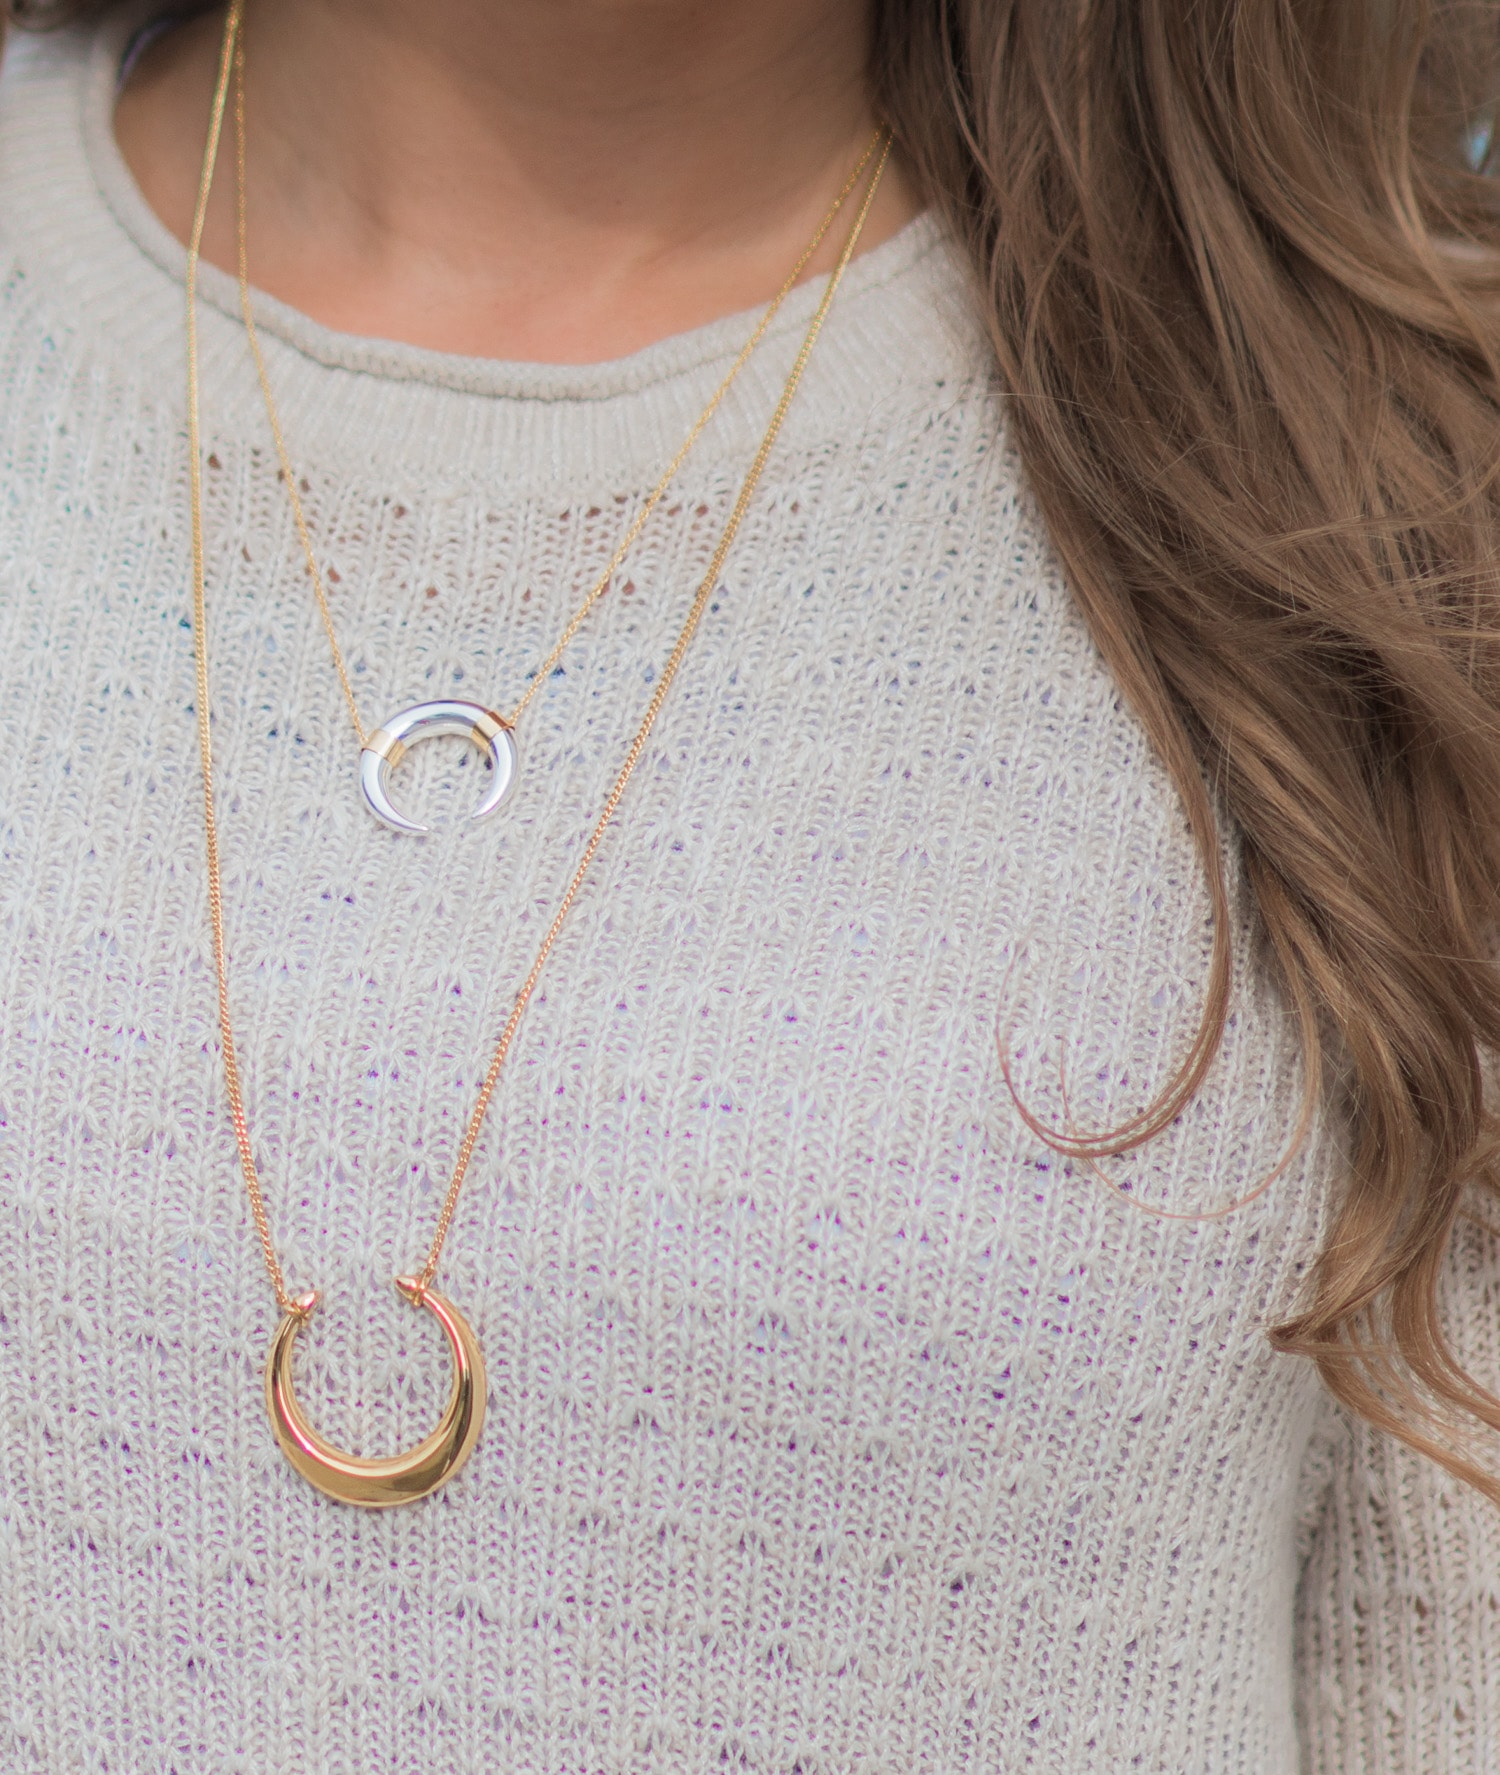 A review of the Stella & Dot fall collection - including the Stella & Dot Double Horn Pendant Necklace and  Luna Pendant Necklace by style blogger Ashley Brooke Nicholas